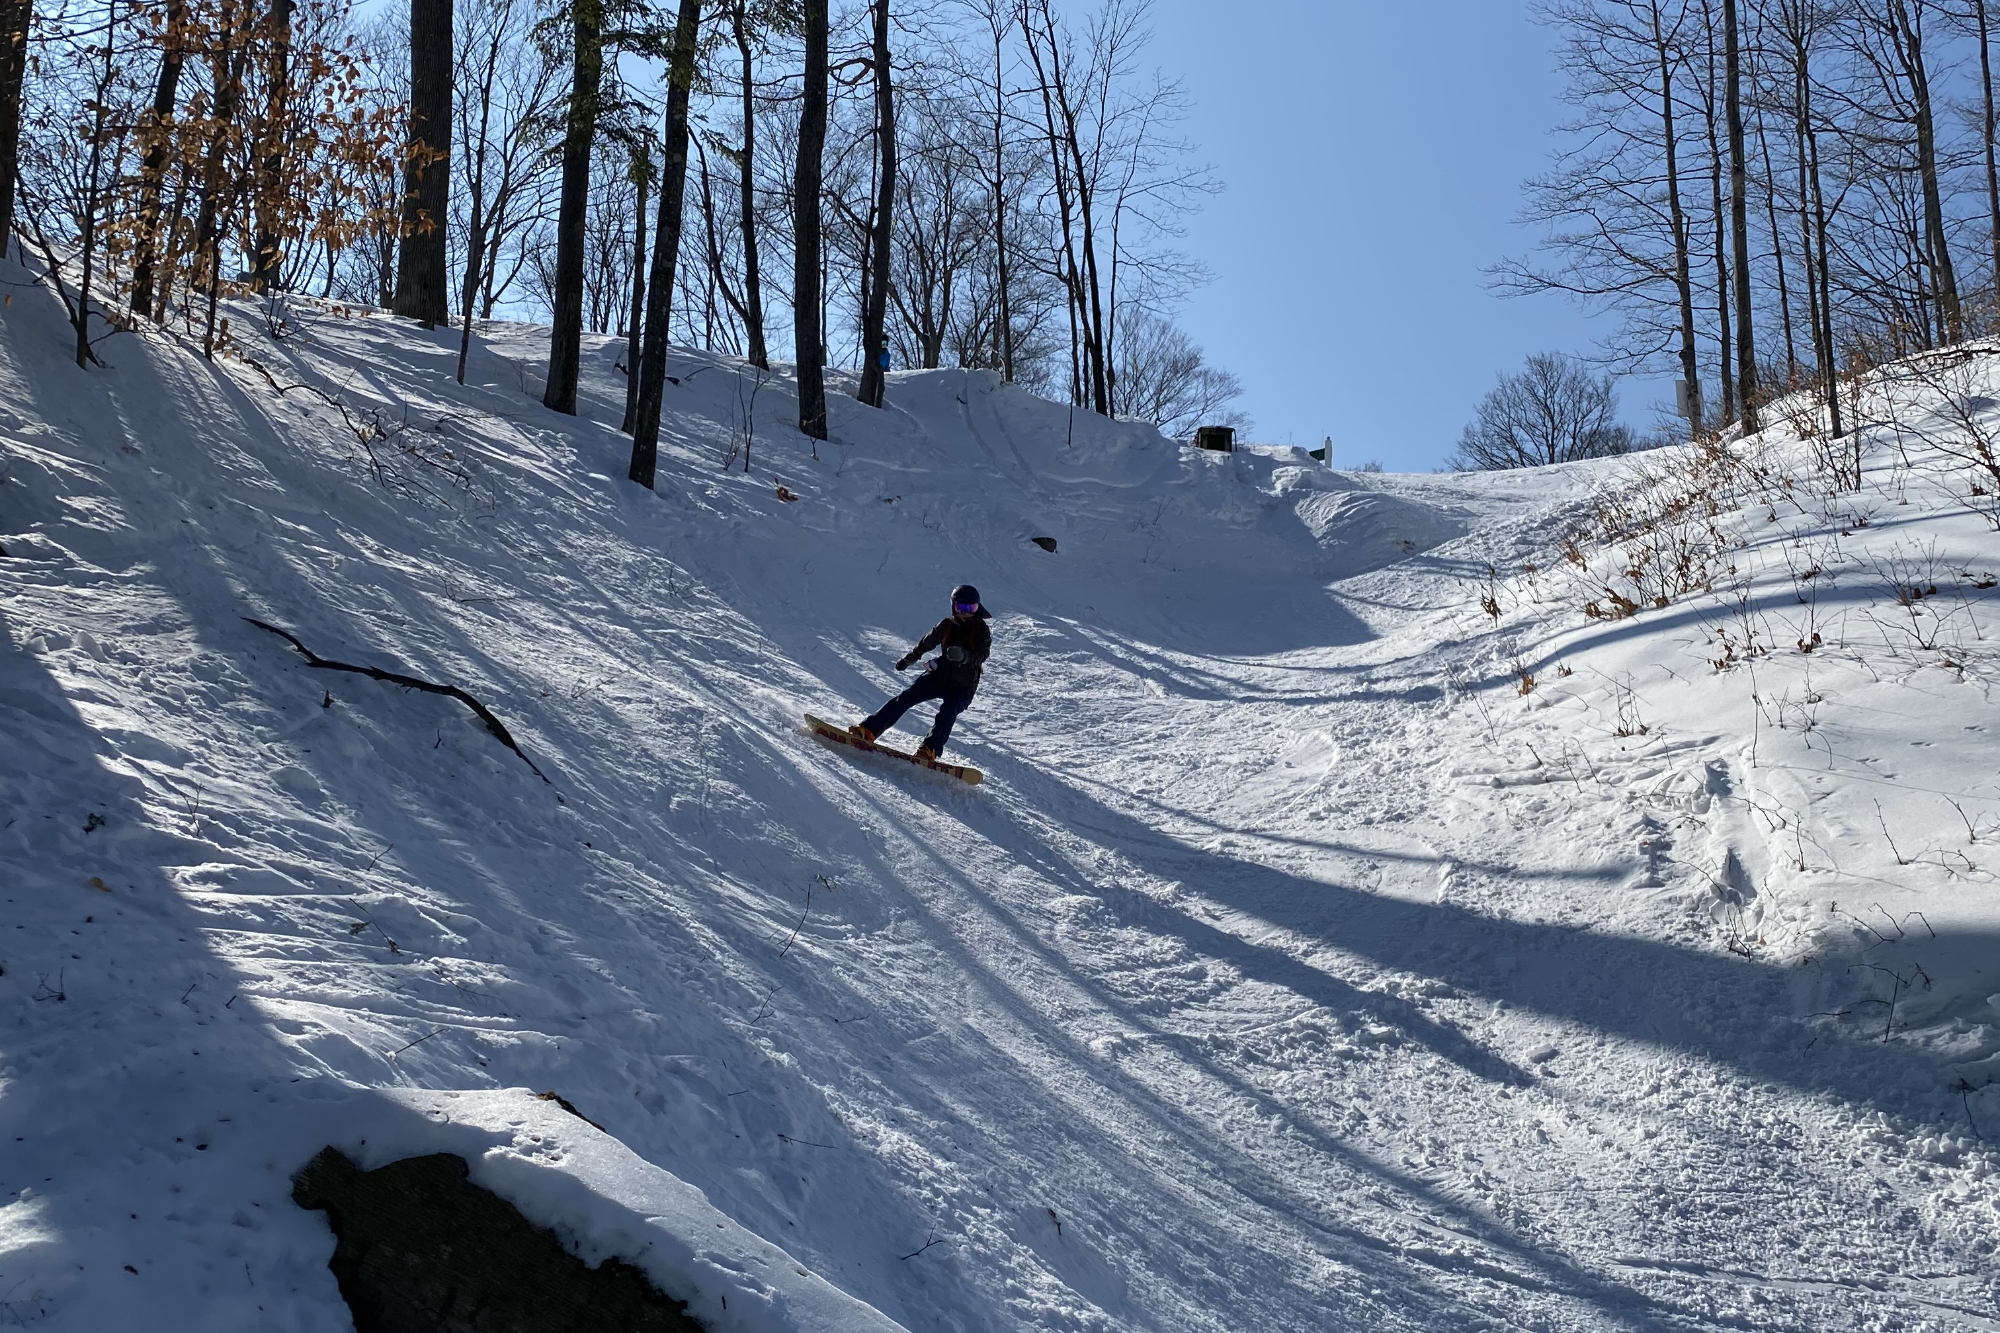 Steep chute at Boyne Highlands